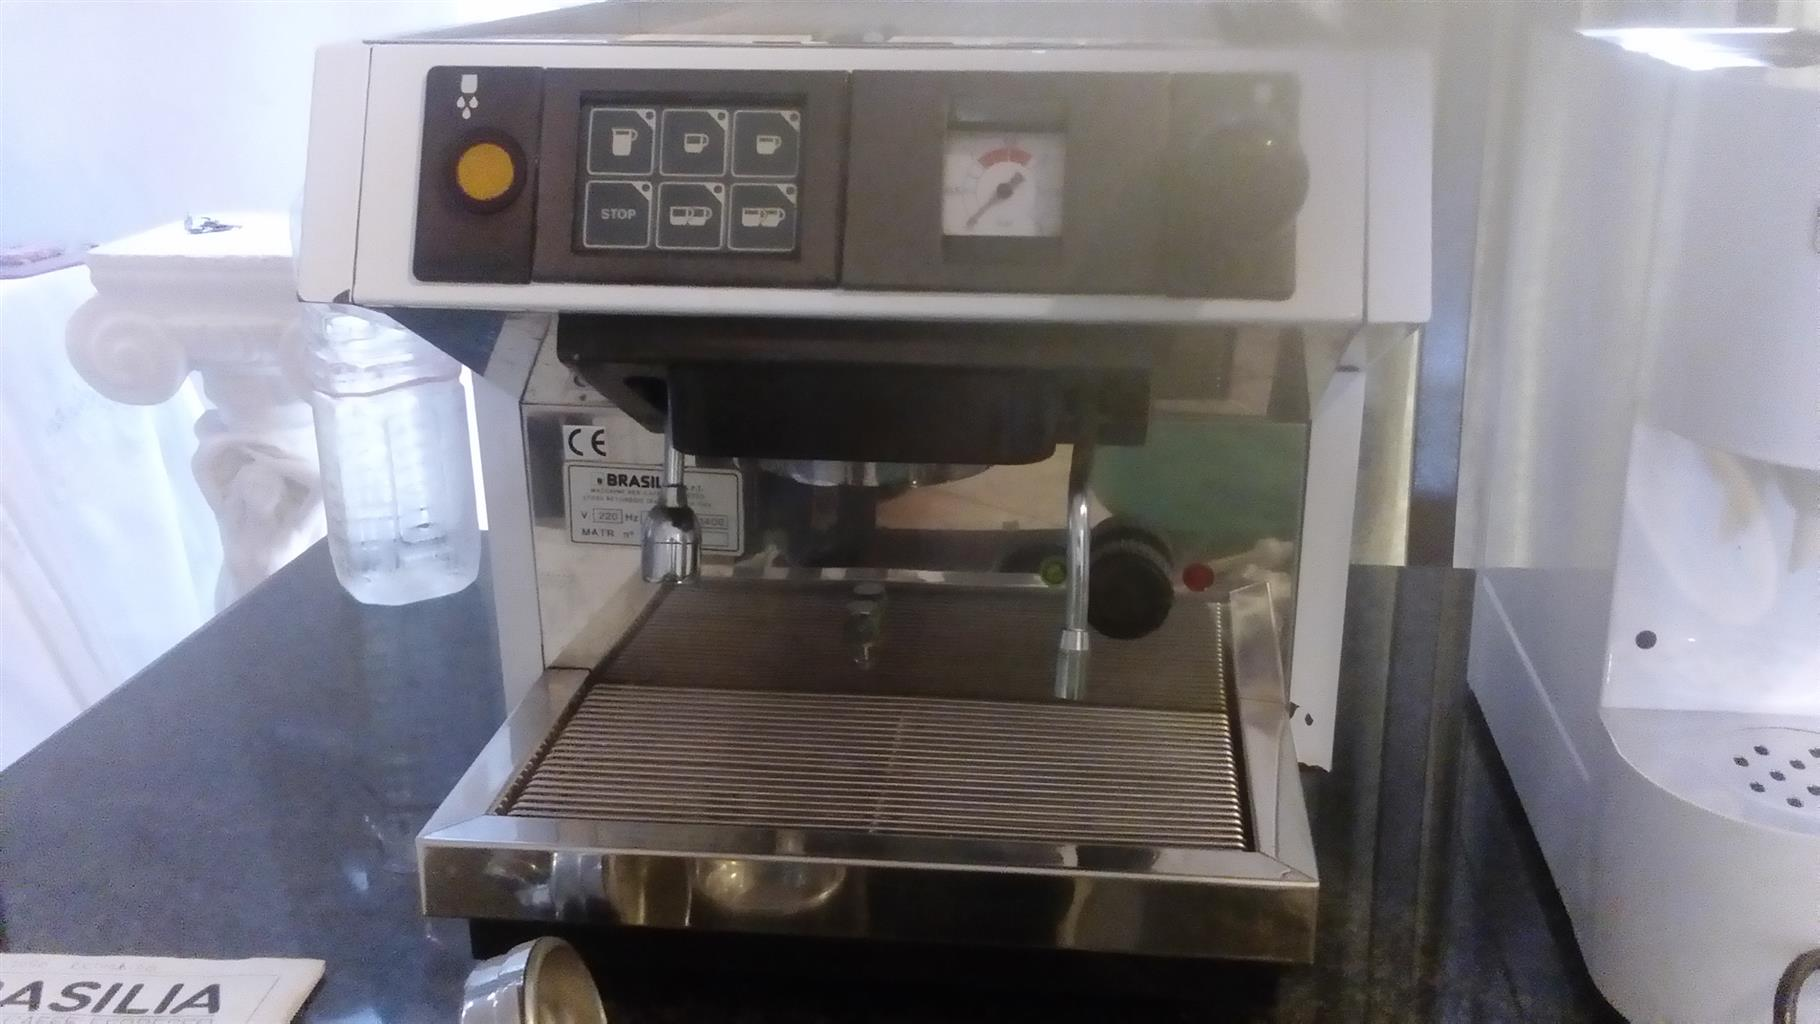 Cappuccino and coffee grinder machine